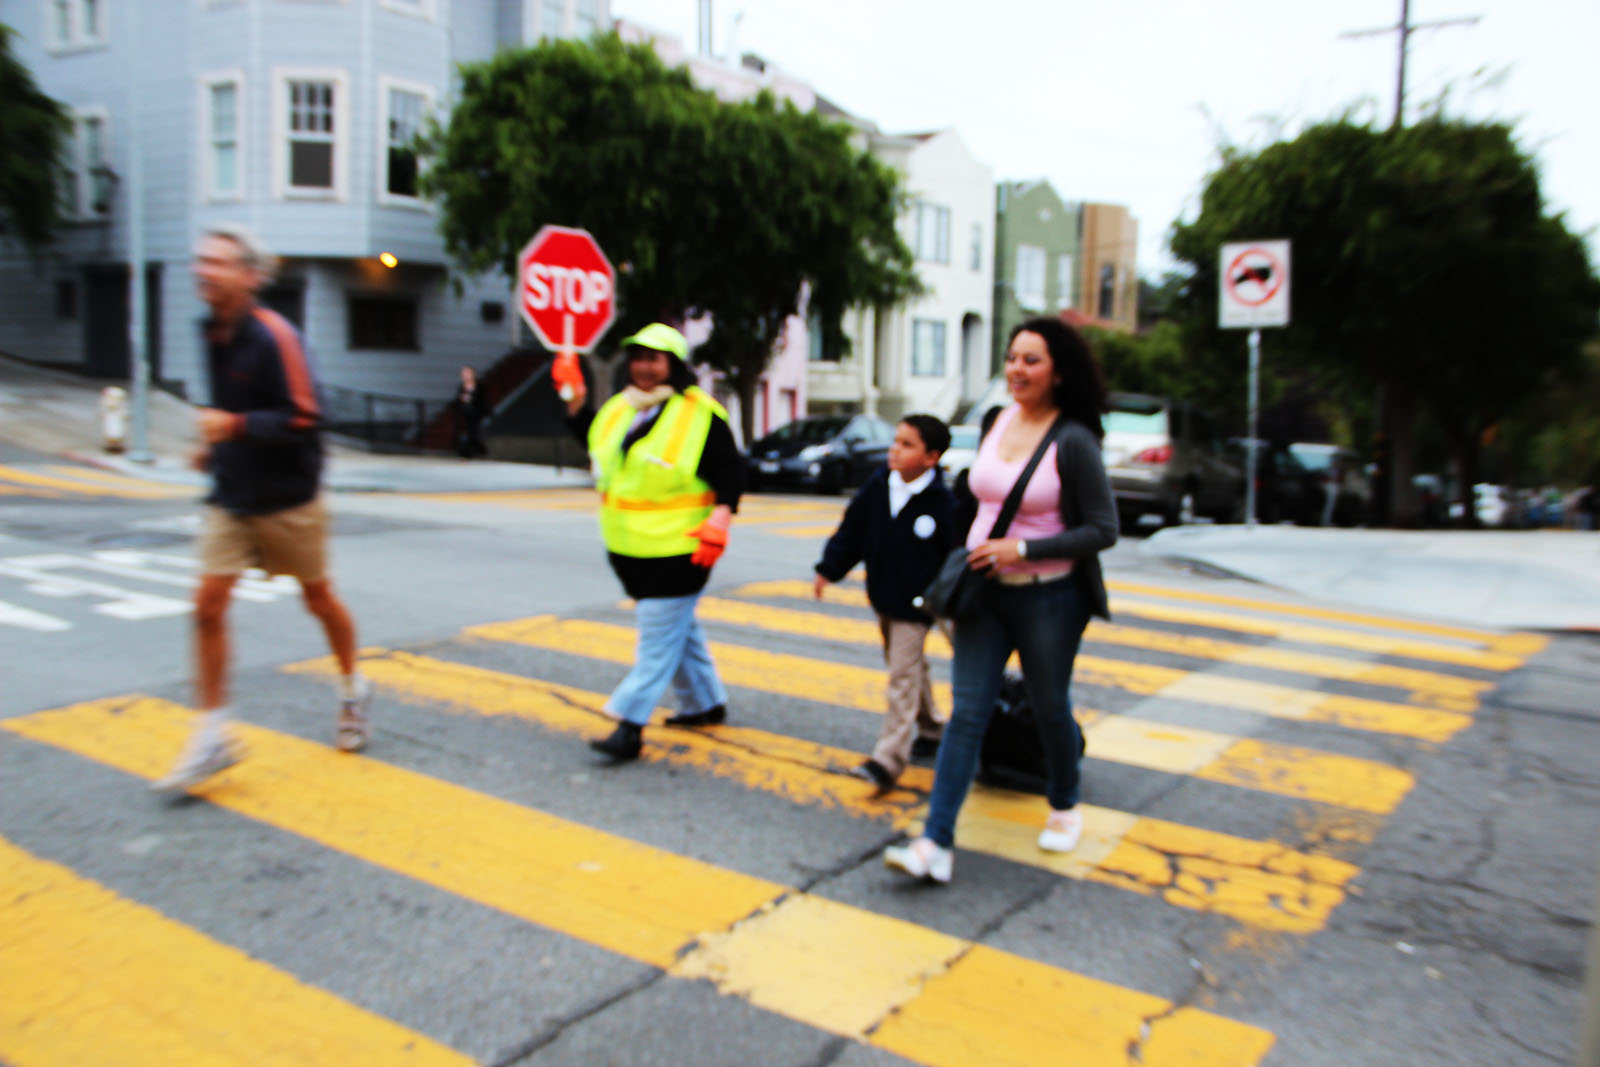 City to Mission Drivers: Slow Down